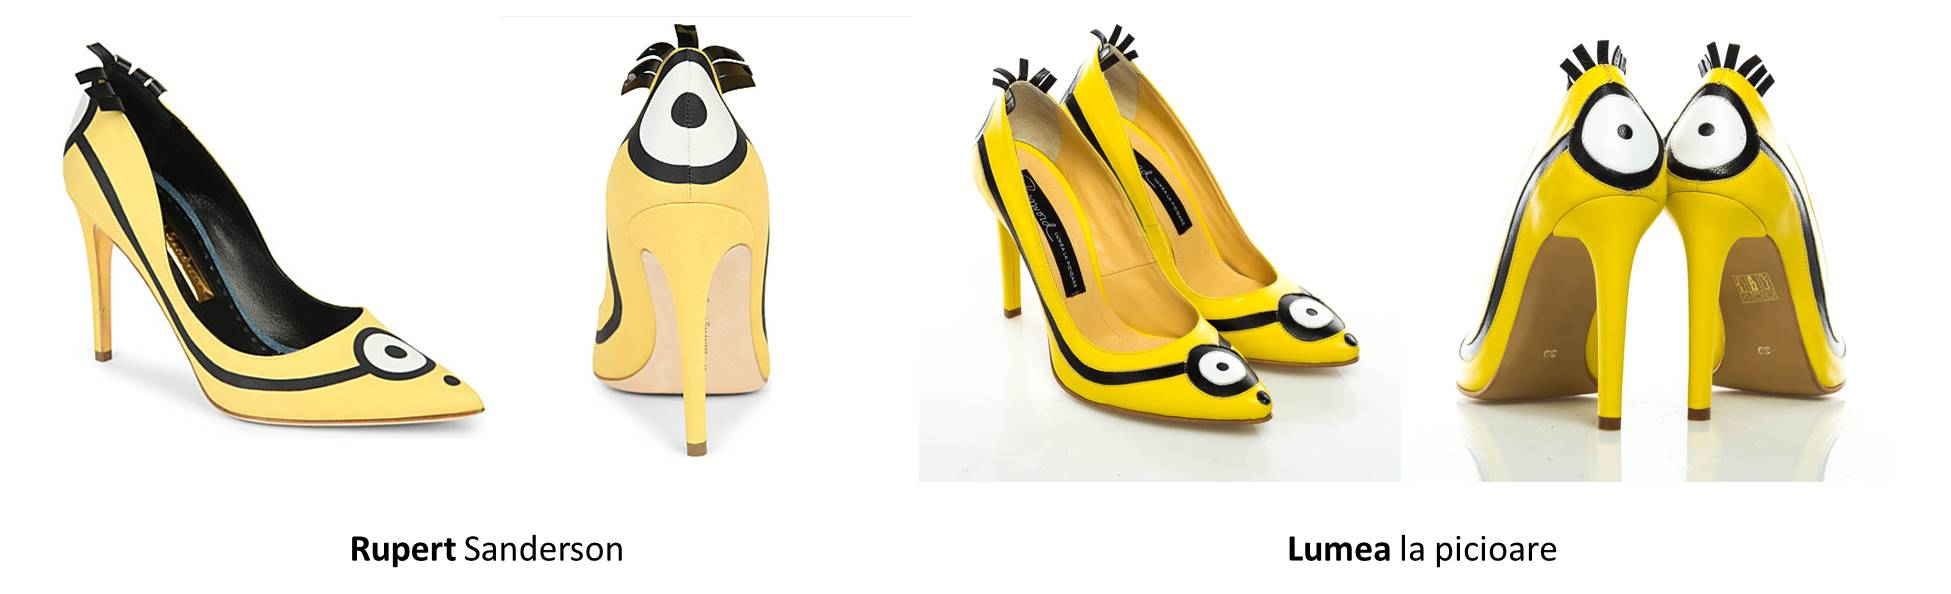 minions shoes real vs fake